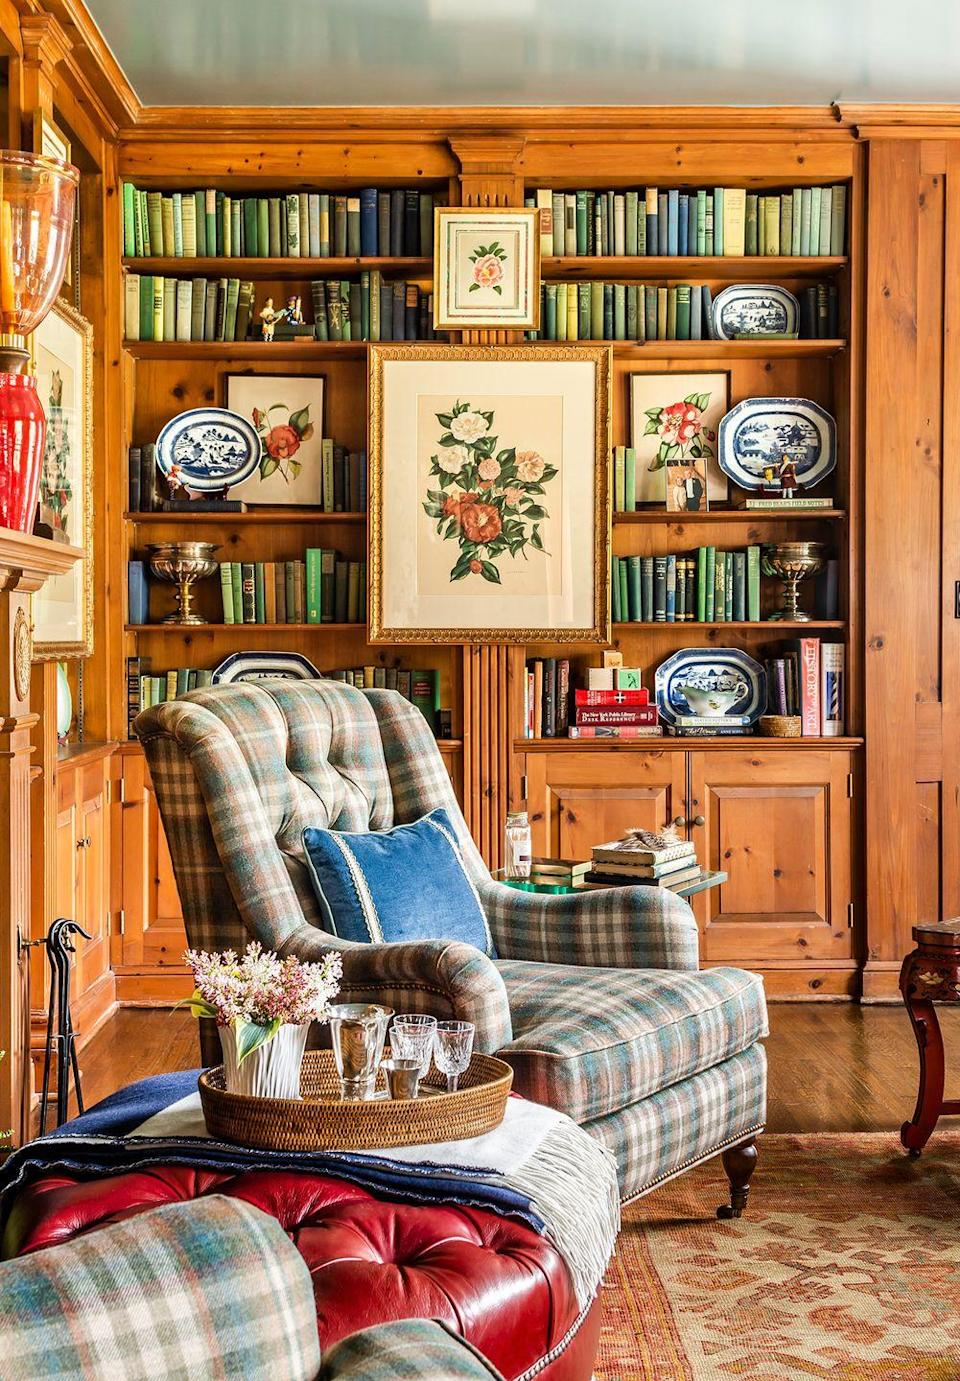 <p>In this library setup, plaid seating lends contrast to wood shelving and flooring. </p>